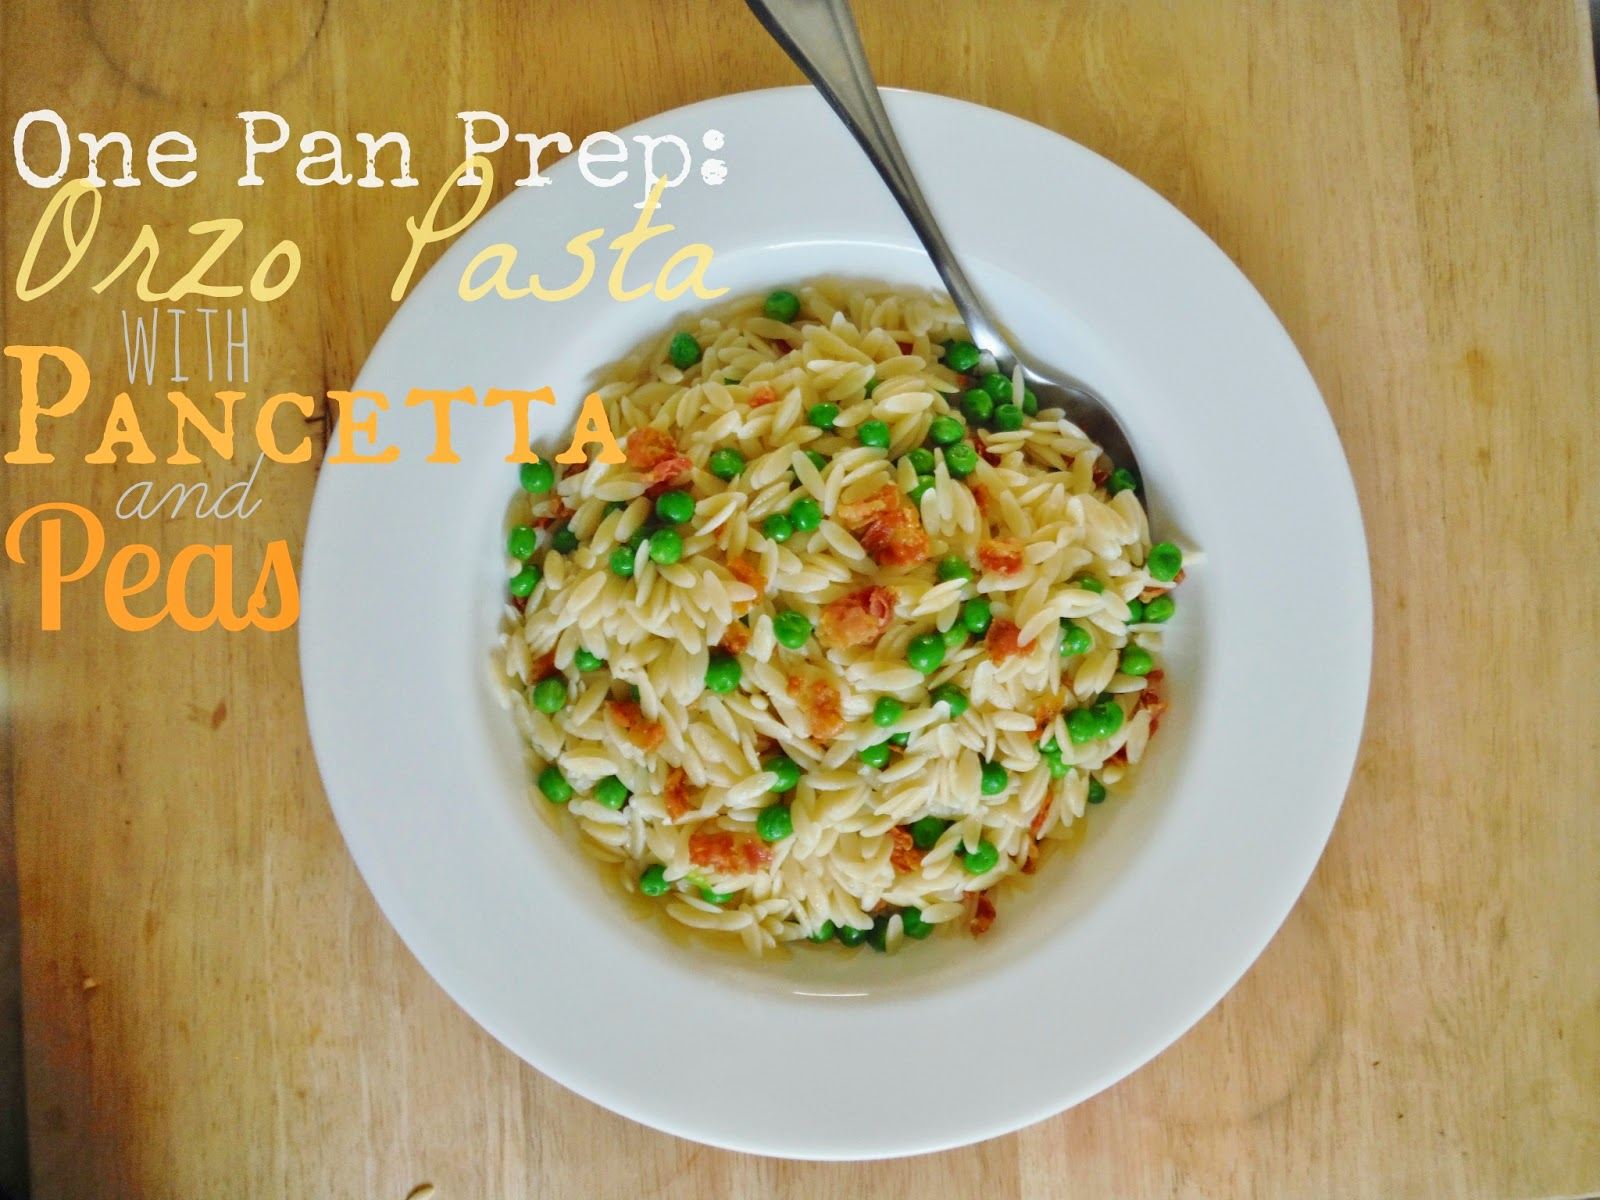 One Pan Prep: Orzo with Pancetta and Peas